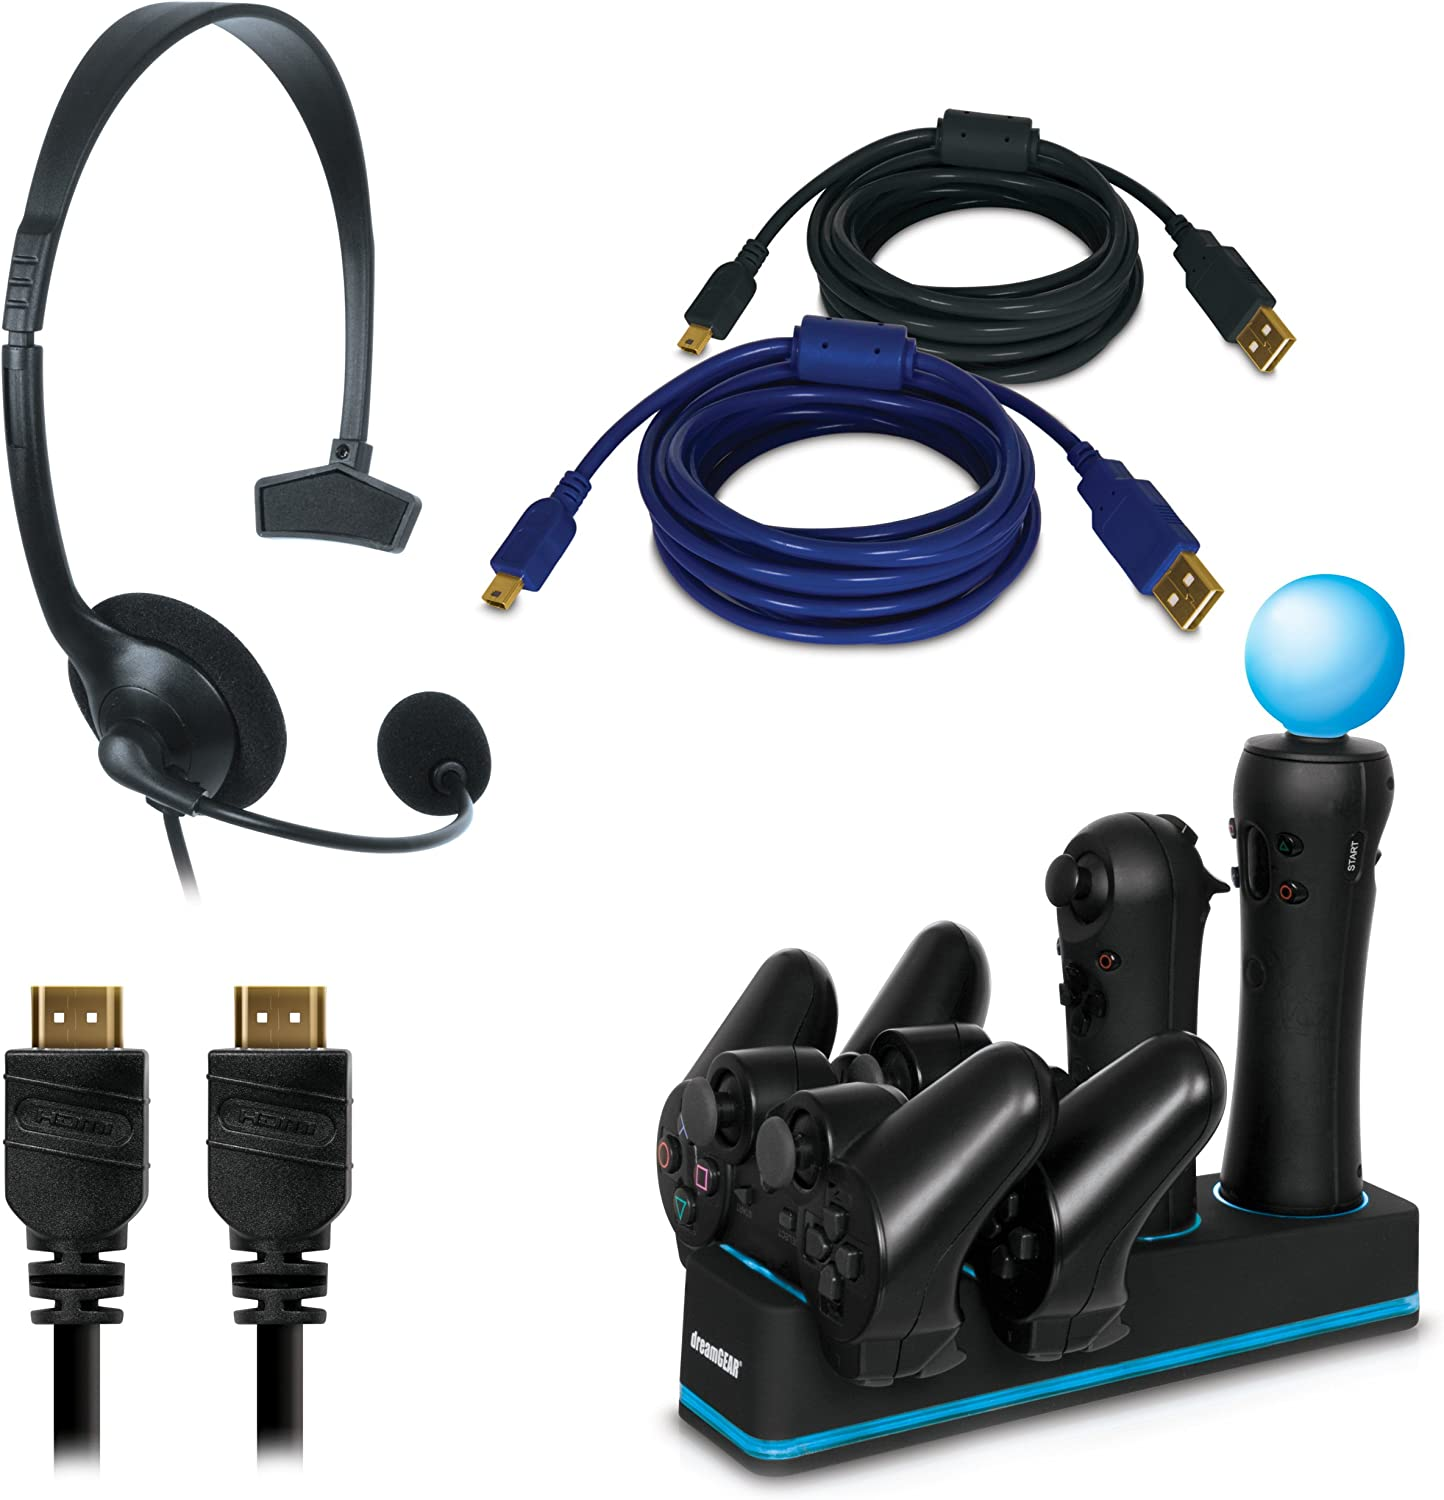 PlayStation 3 5-In-1 Starter Kit